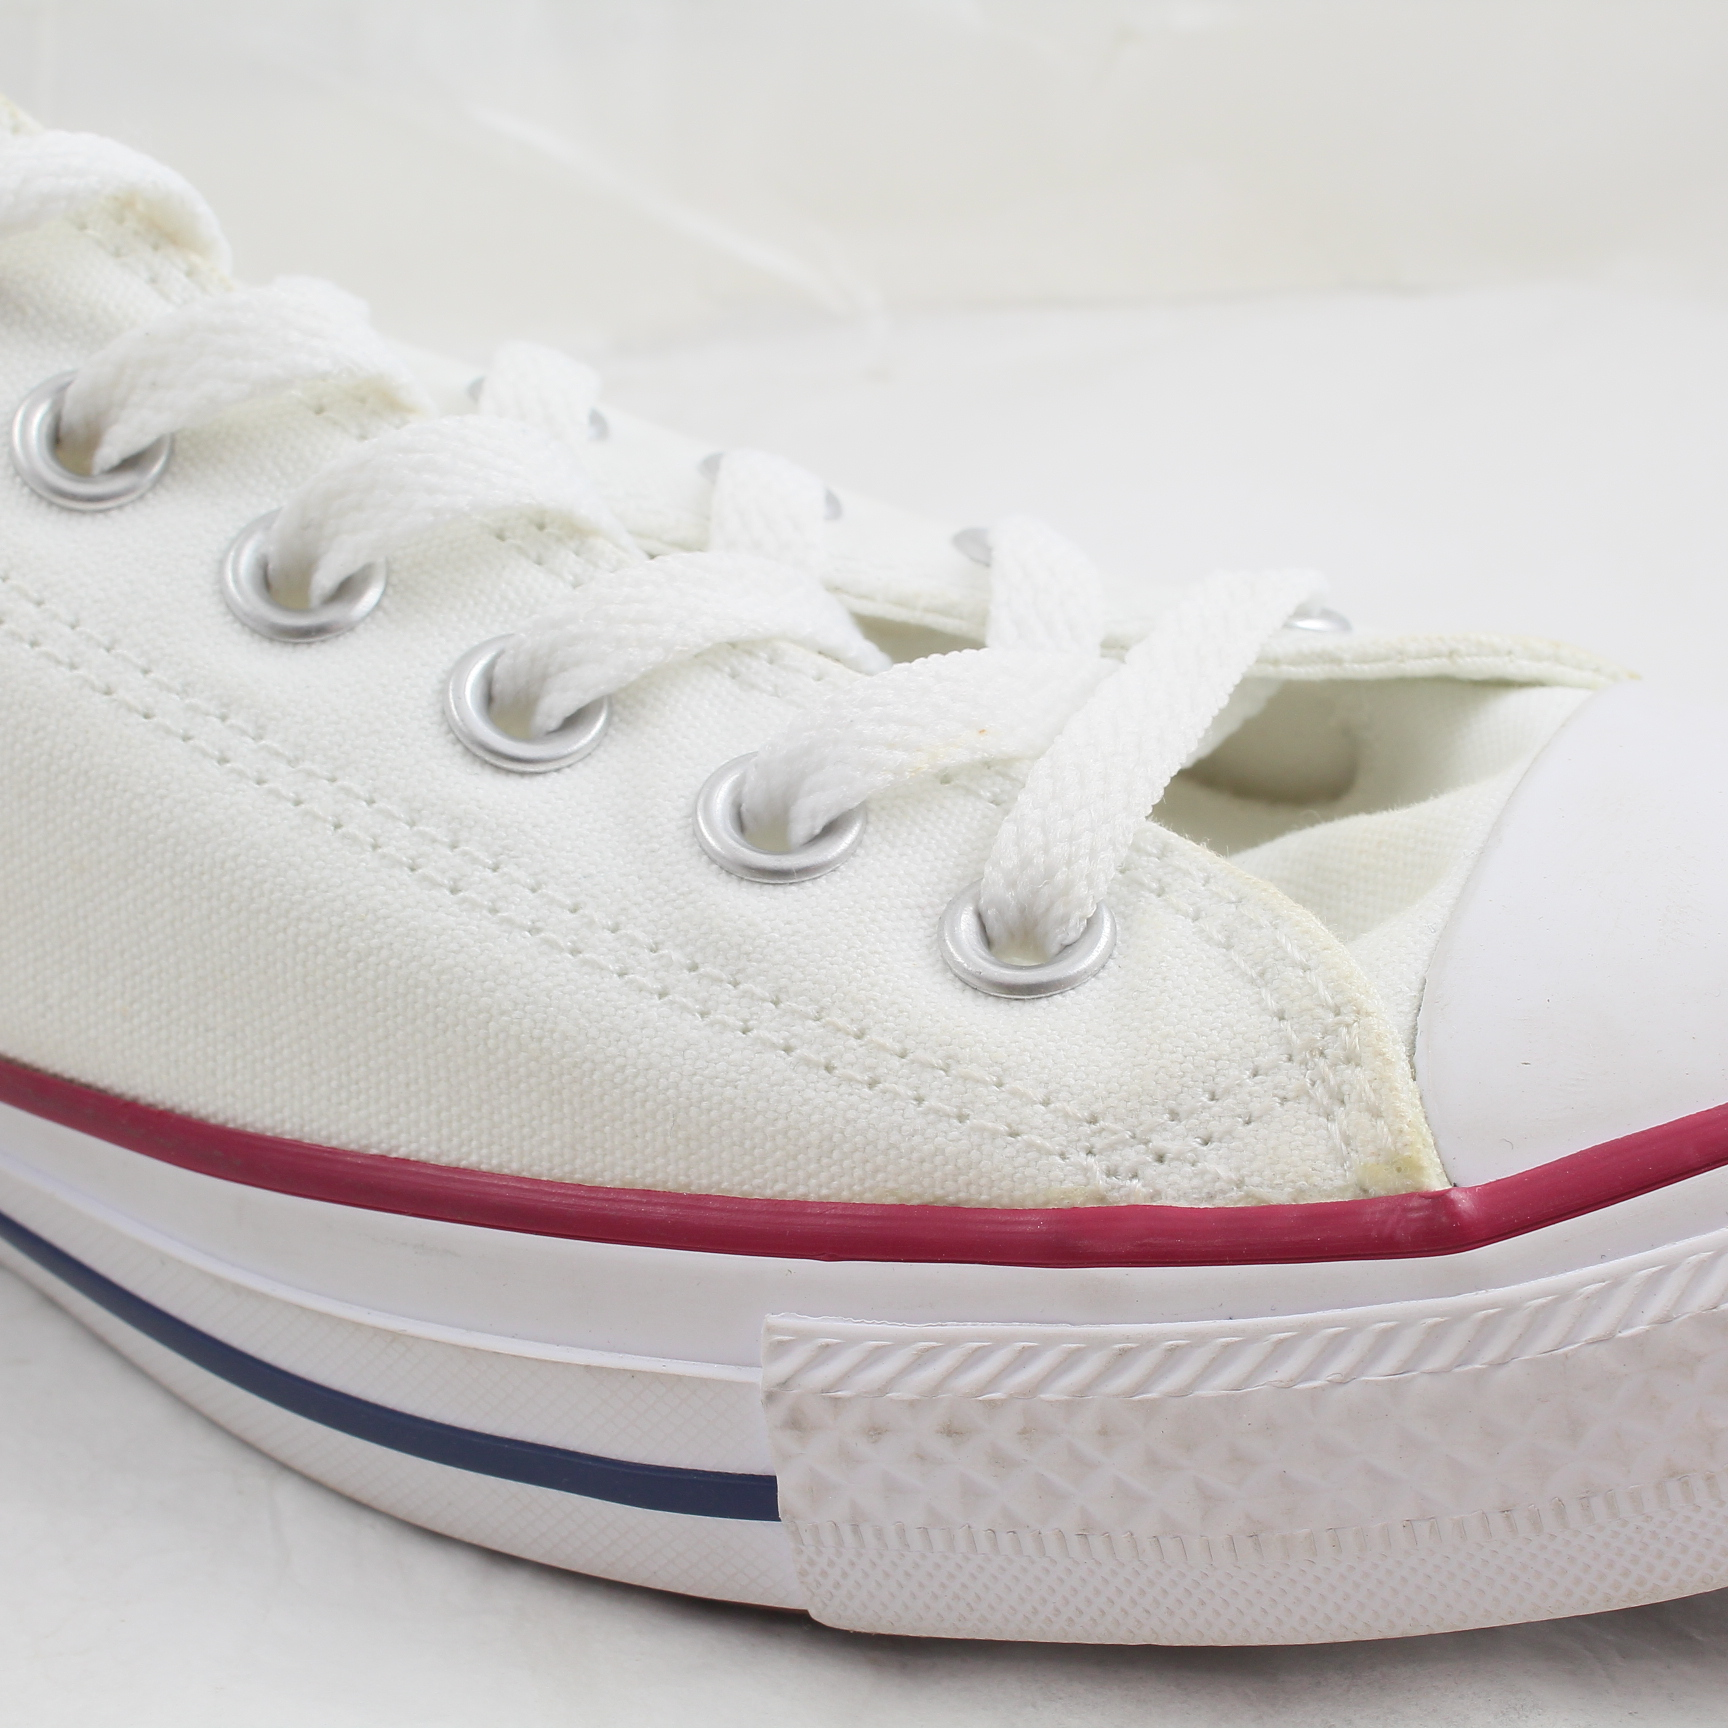 5aa17765f2f6 Sentinel Womens Converse White Canvas Lace Up Trainers Size UK 6  Ex-Display